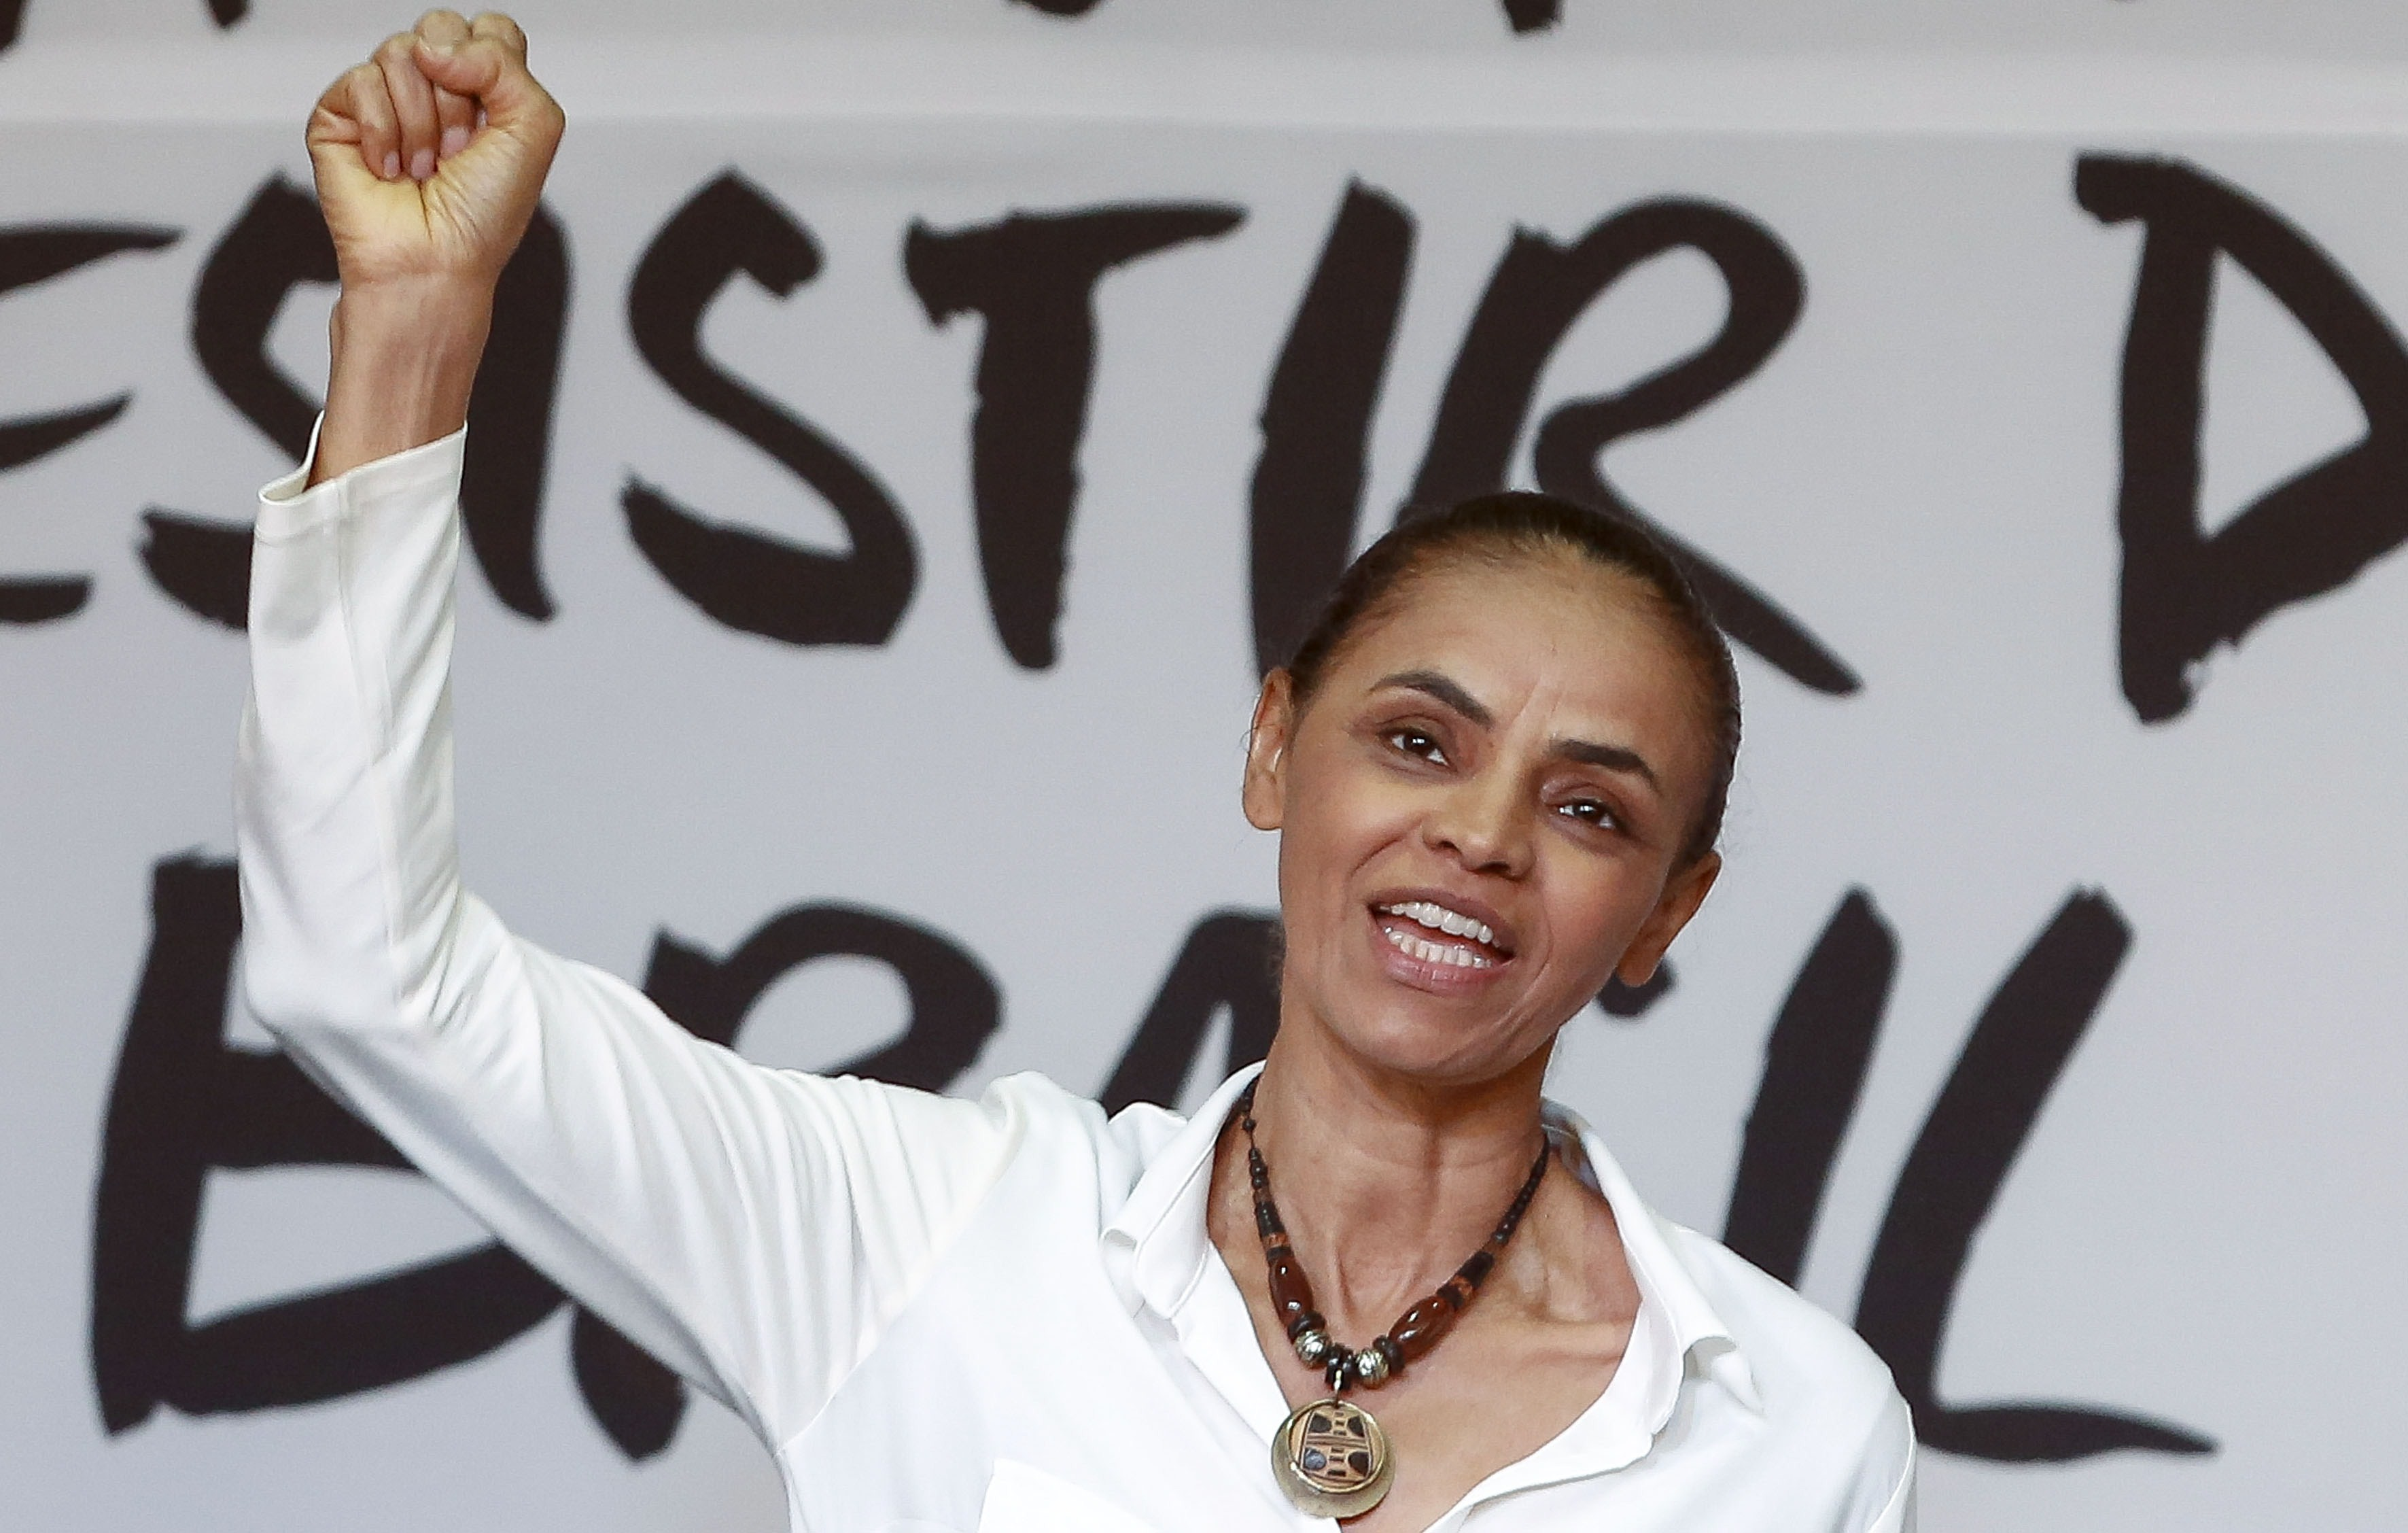 Marina Silva, the presidential candidate of the Brazilian Socialist Party